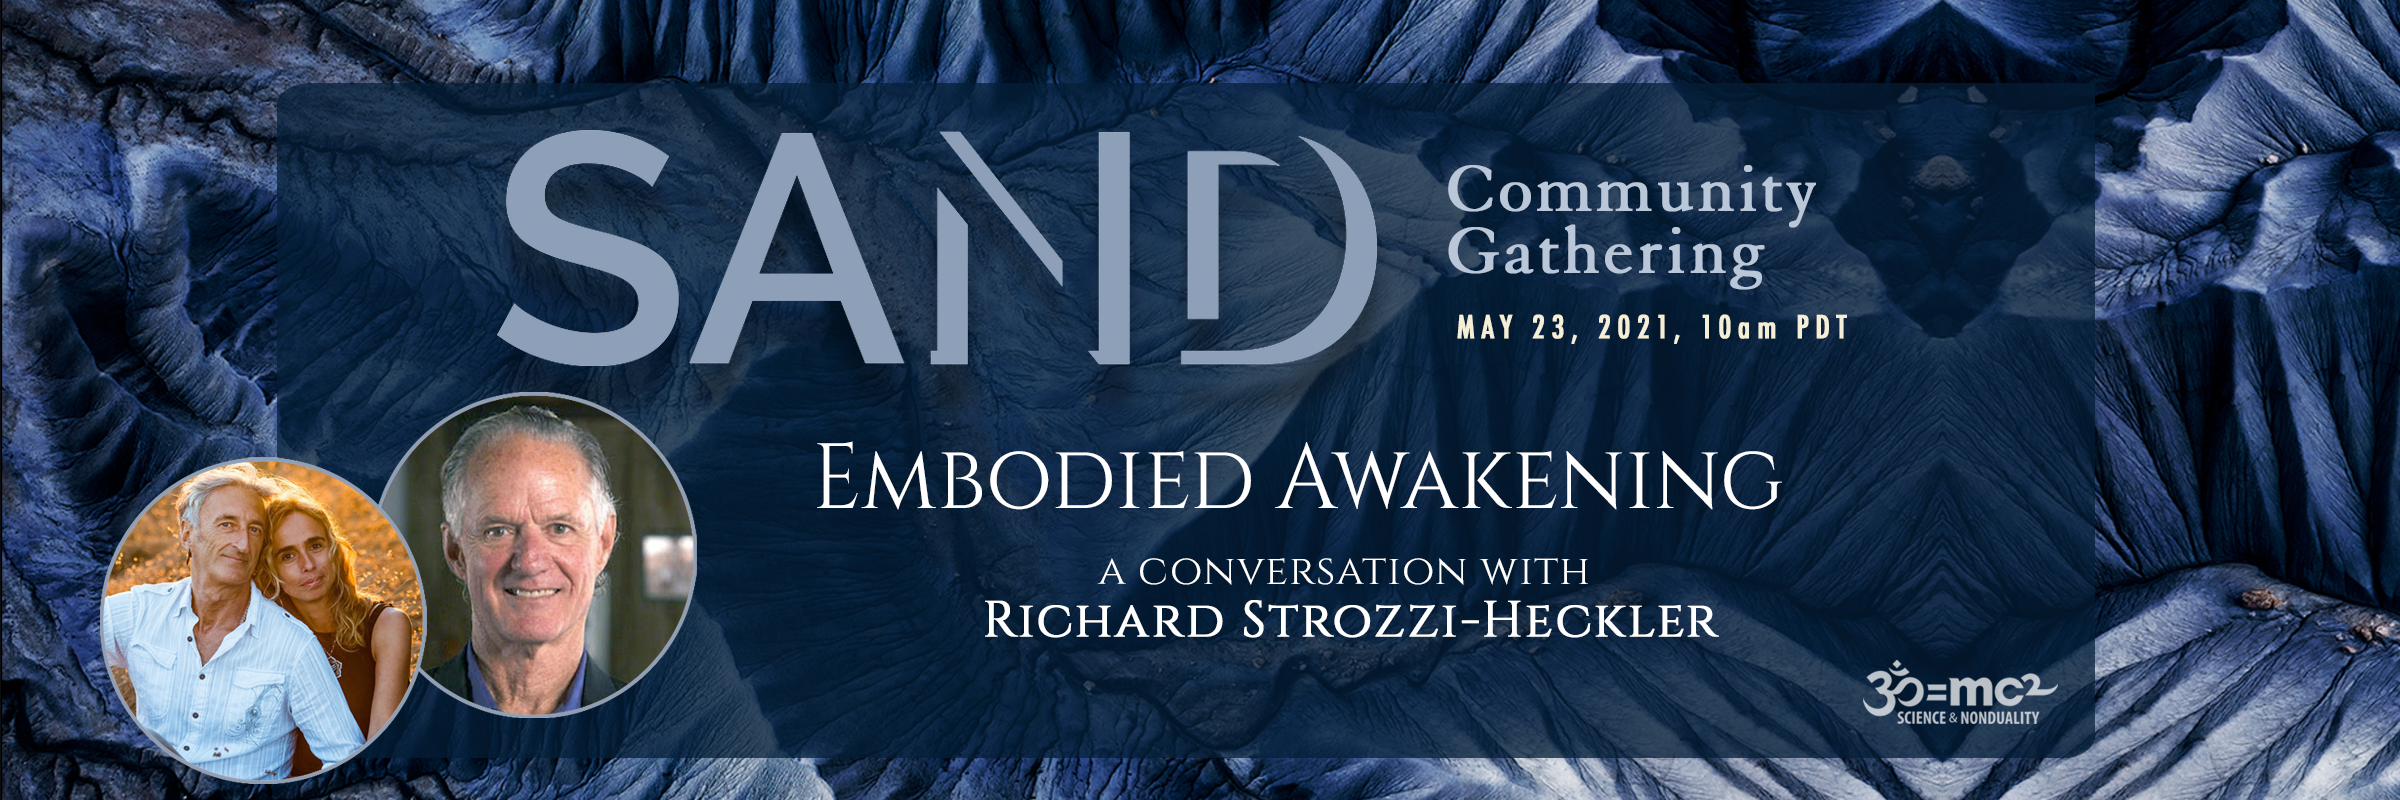 Richard Strozzi-Heckler Community Gathering